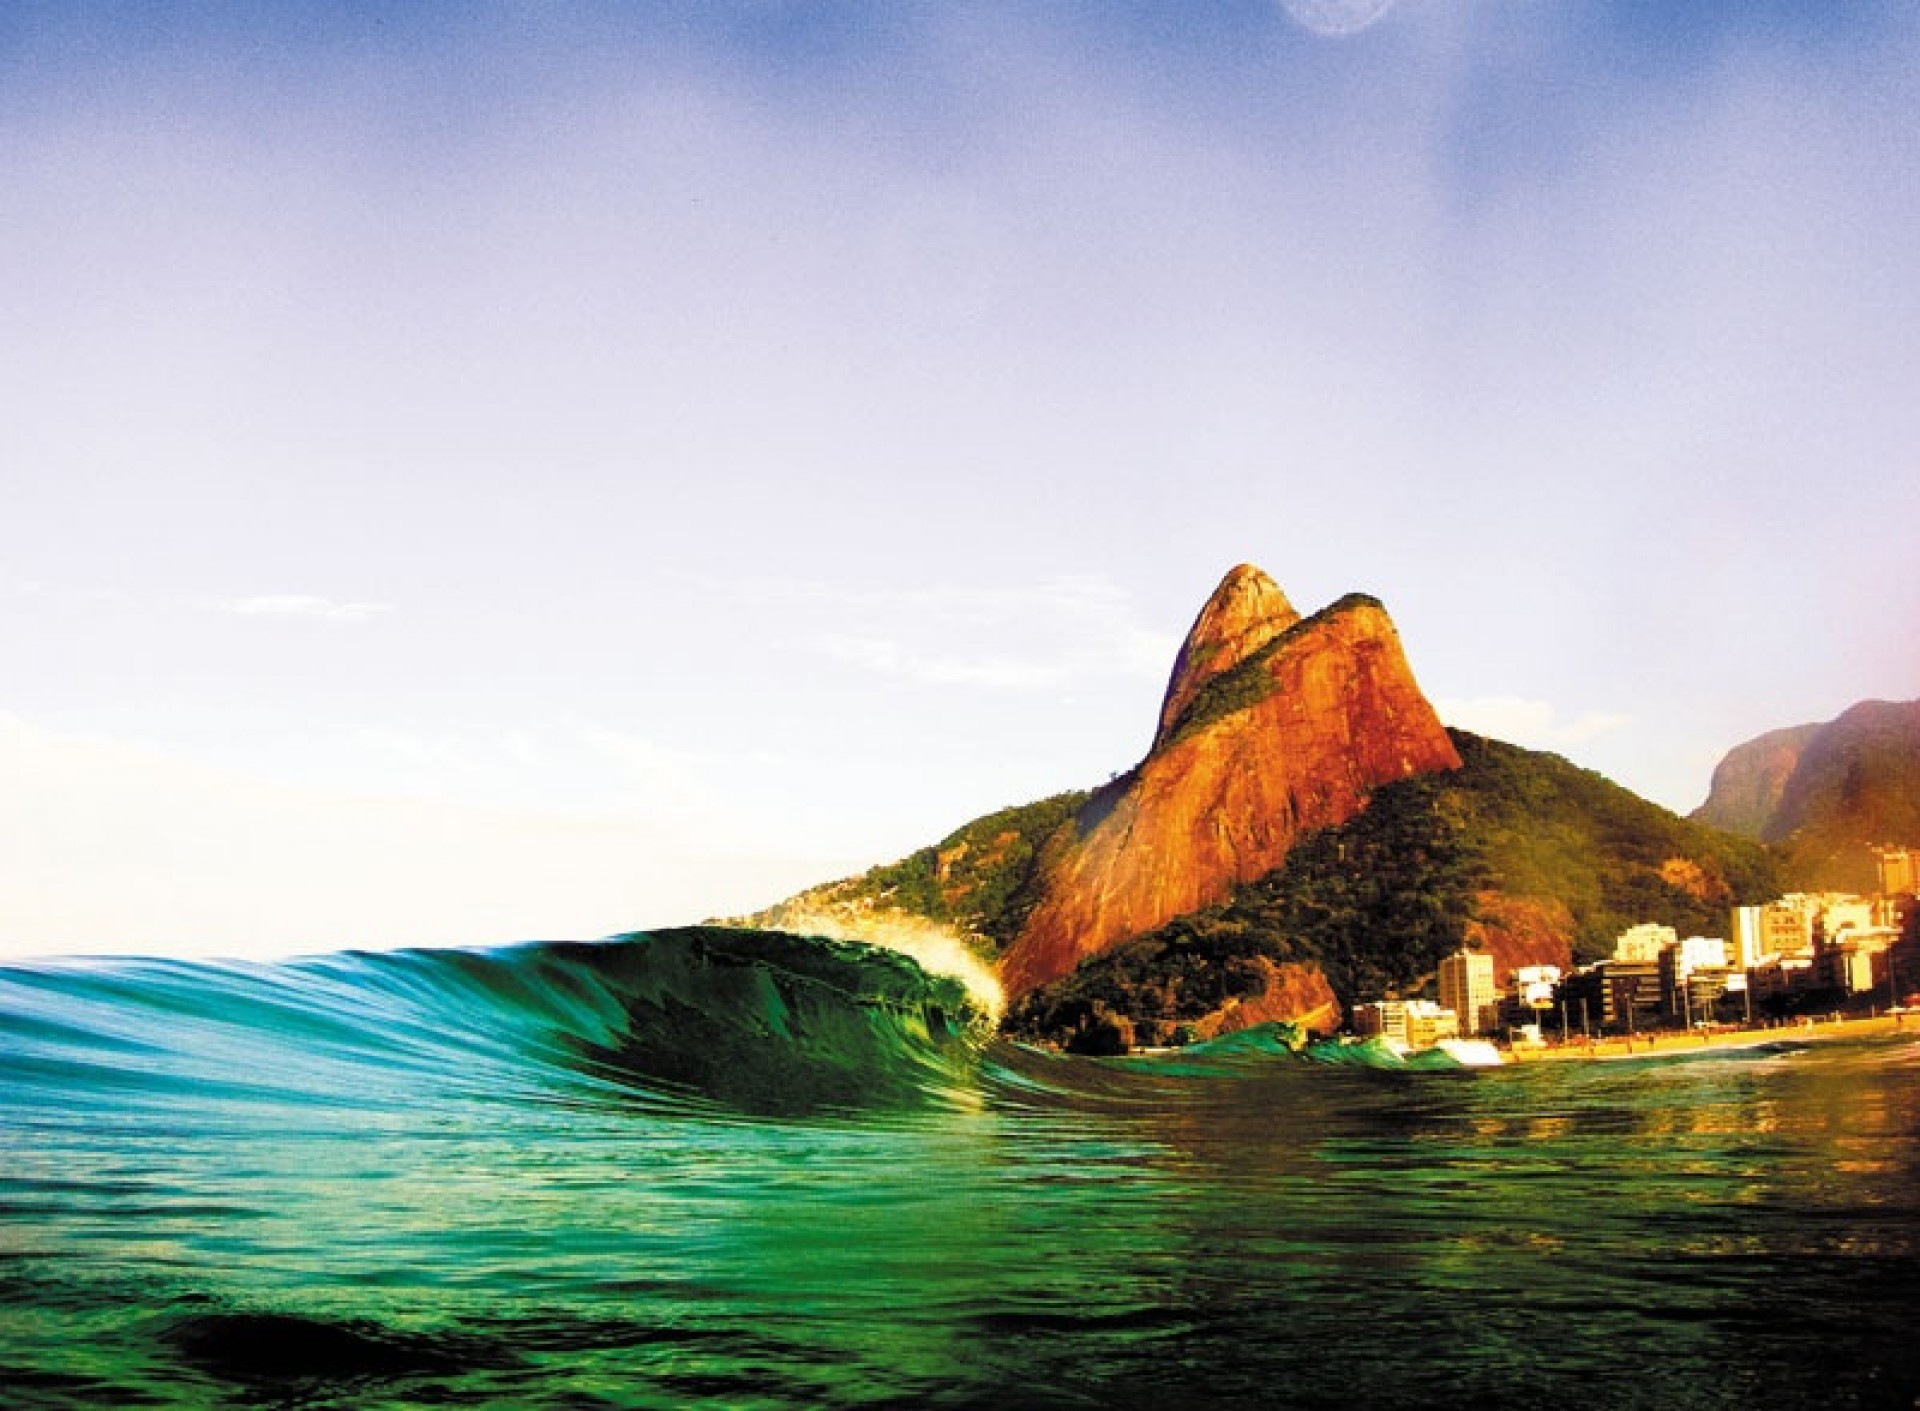 Rider Flip Flops's photo of Rio Capim